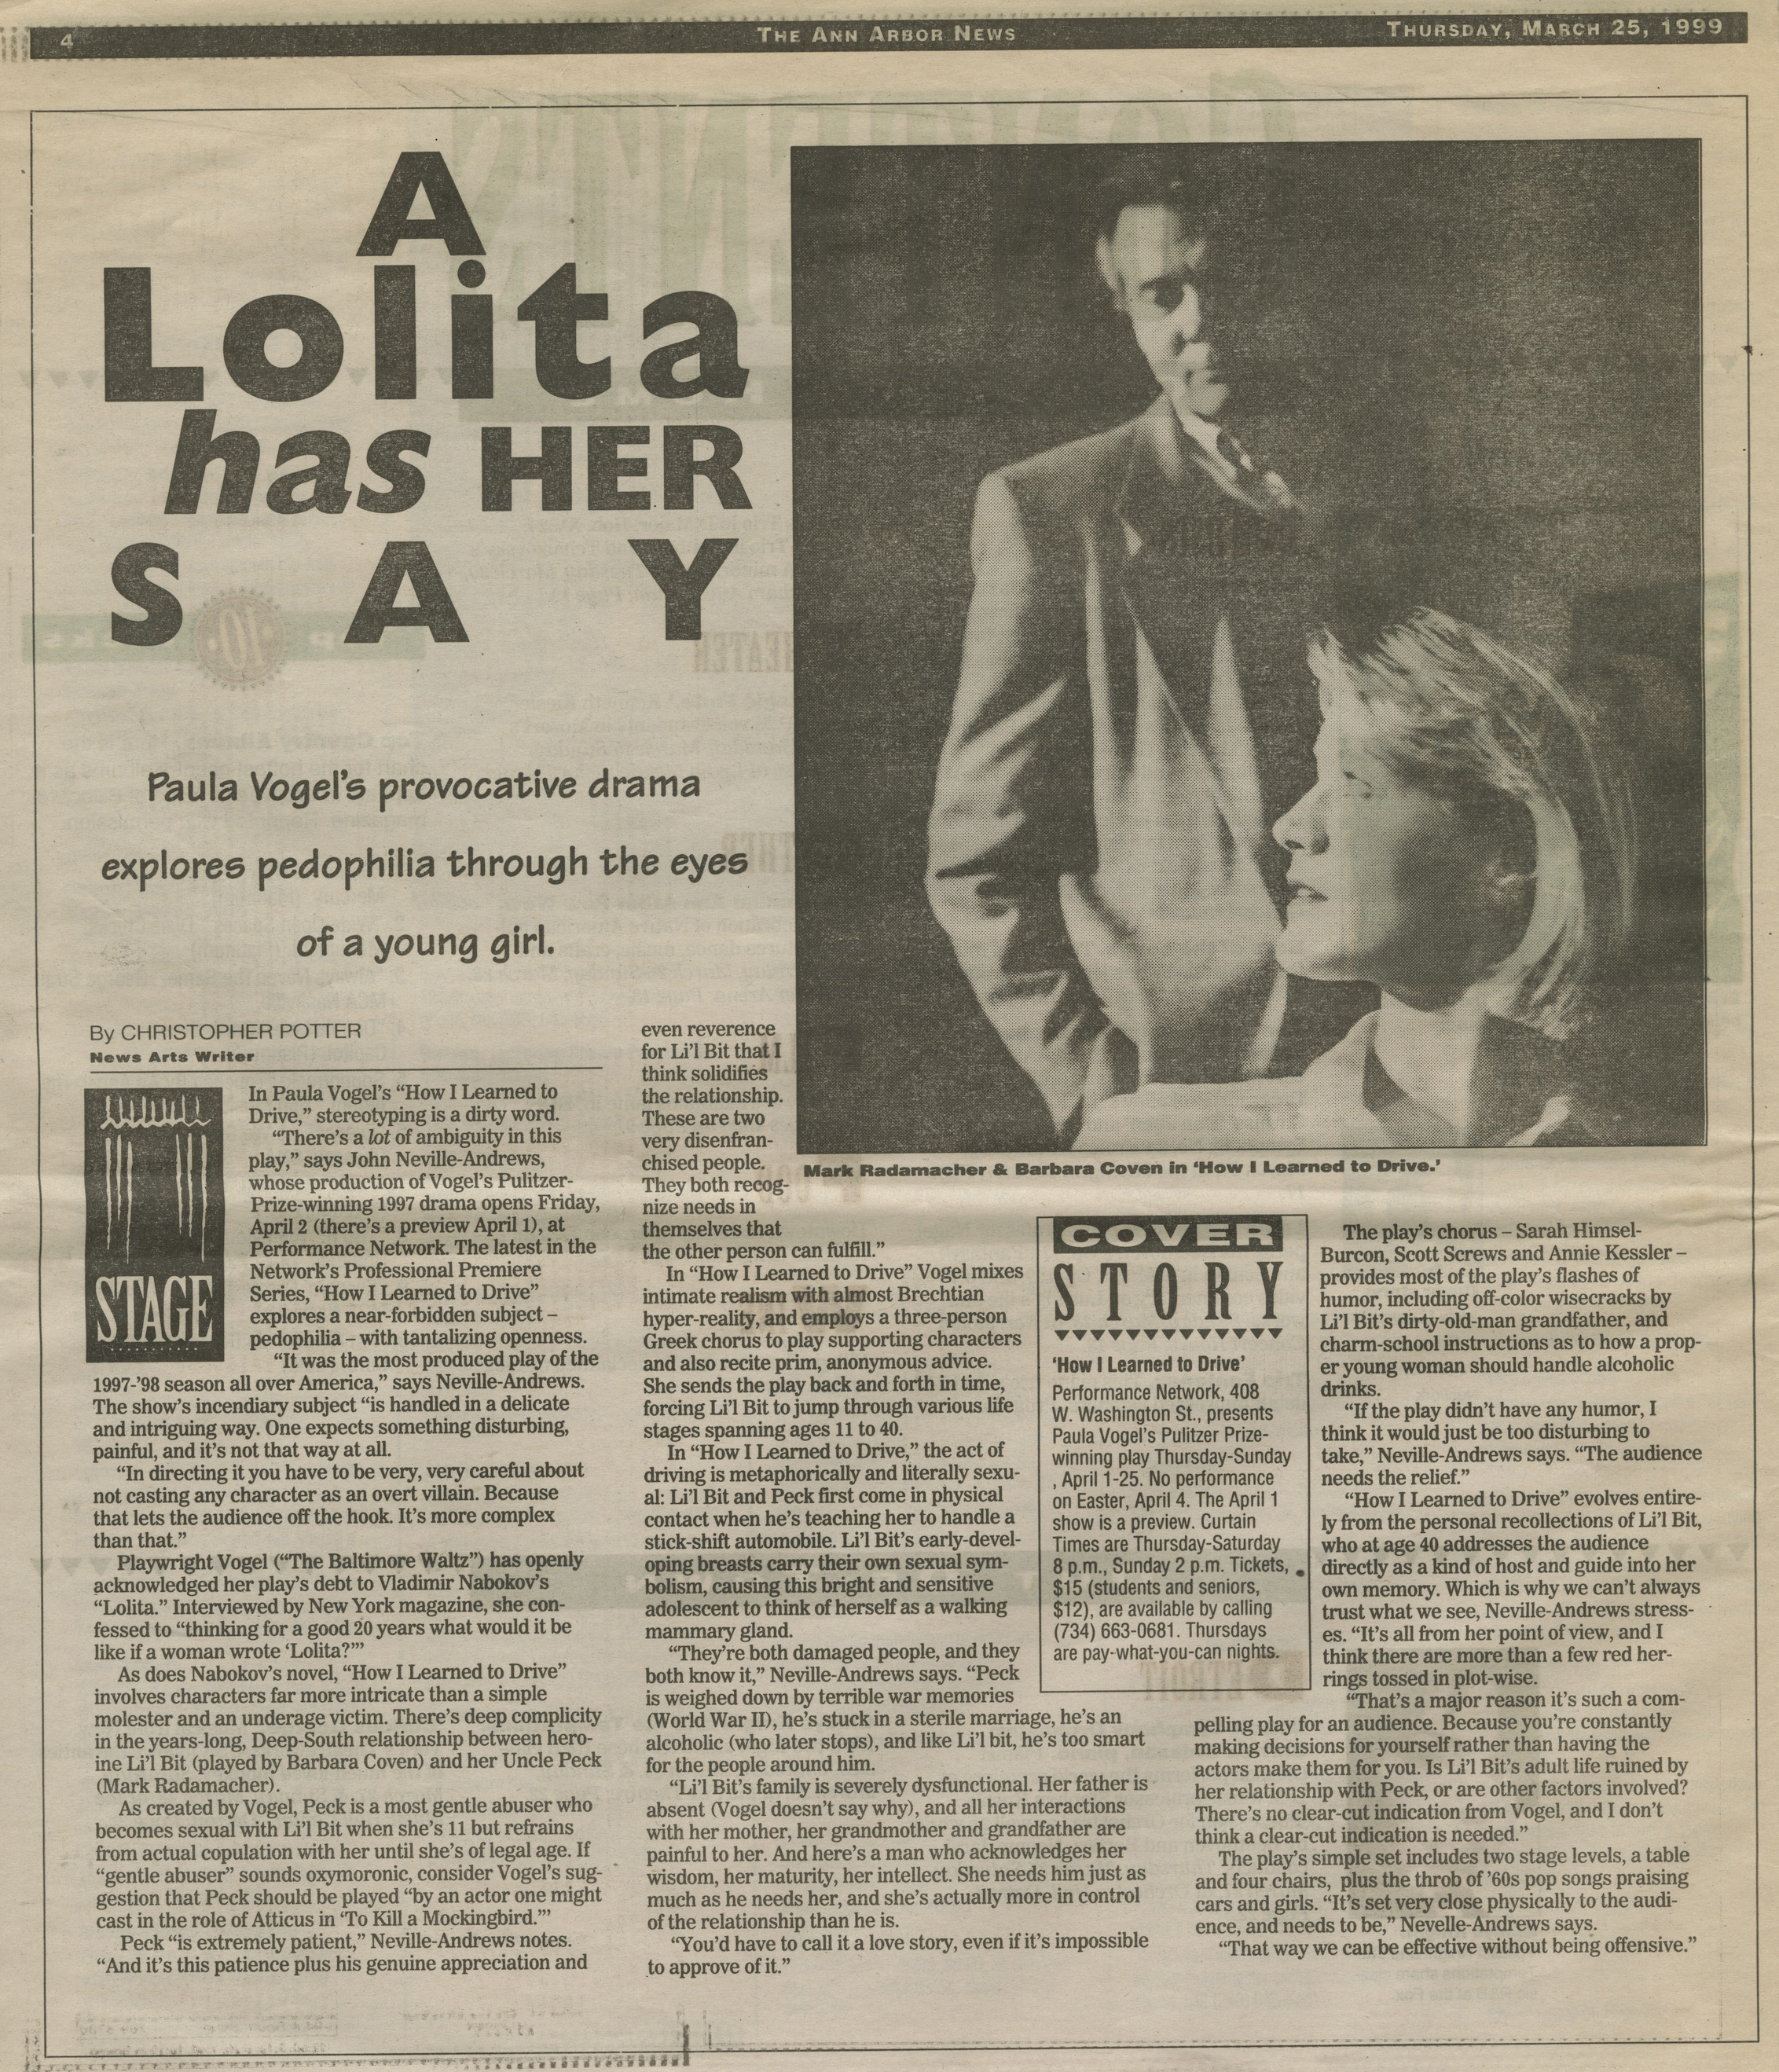 A Lolita has her say image